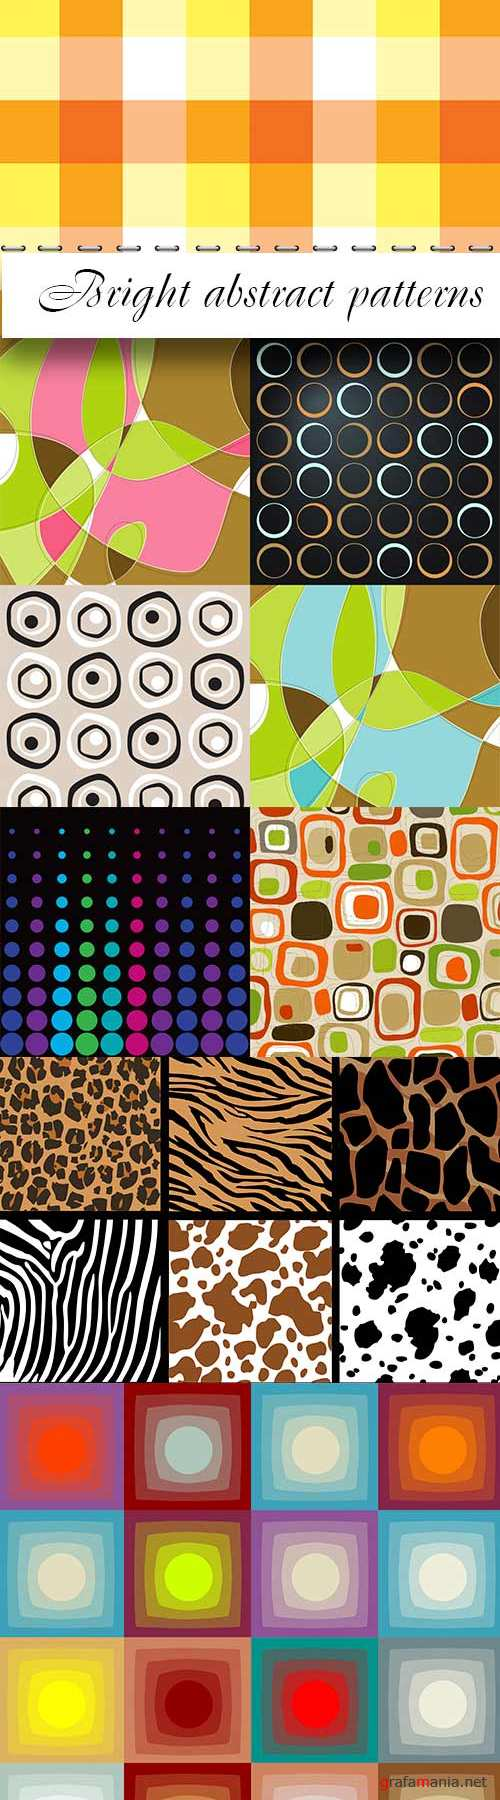 Bright abstract patterns